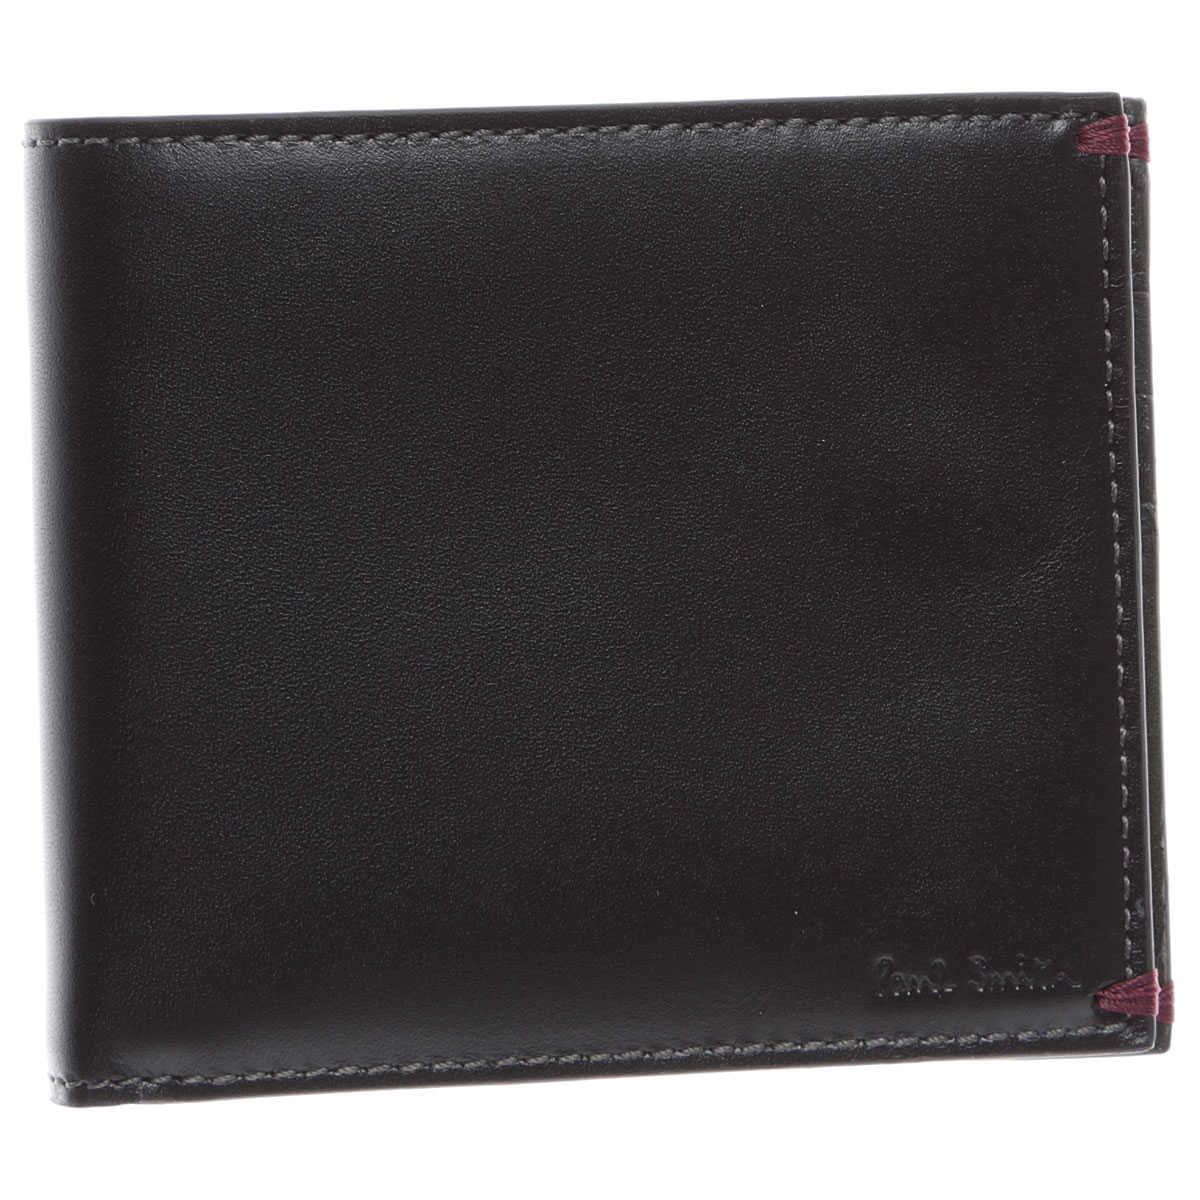 Paul Smith Wallet for Men Black - GOOFASH